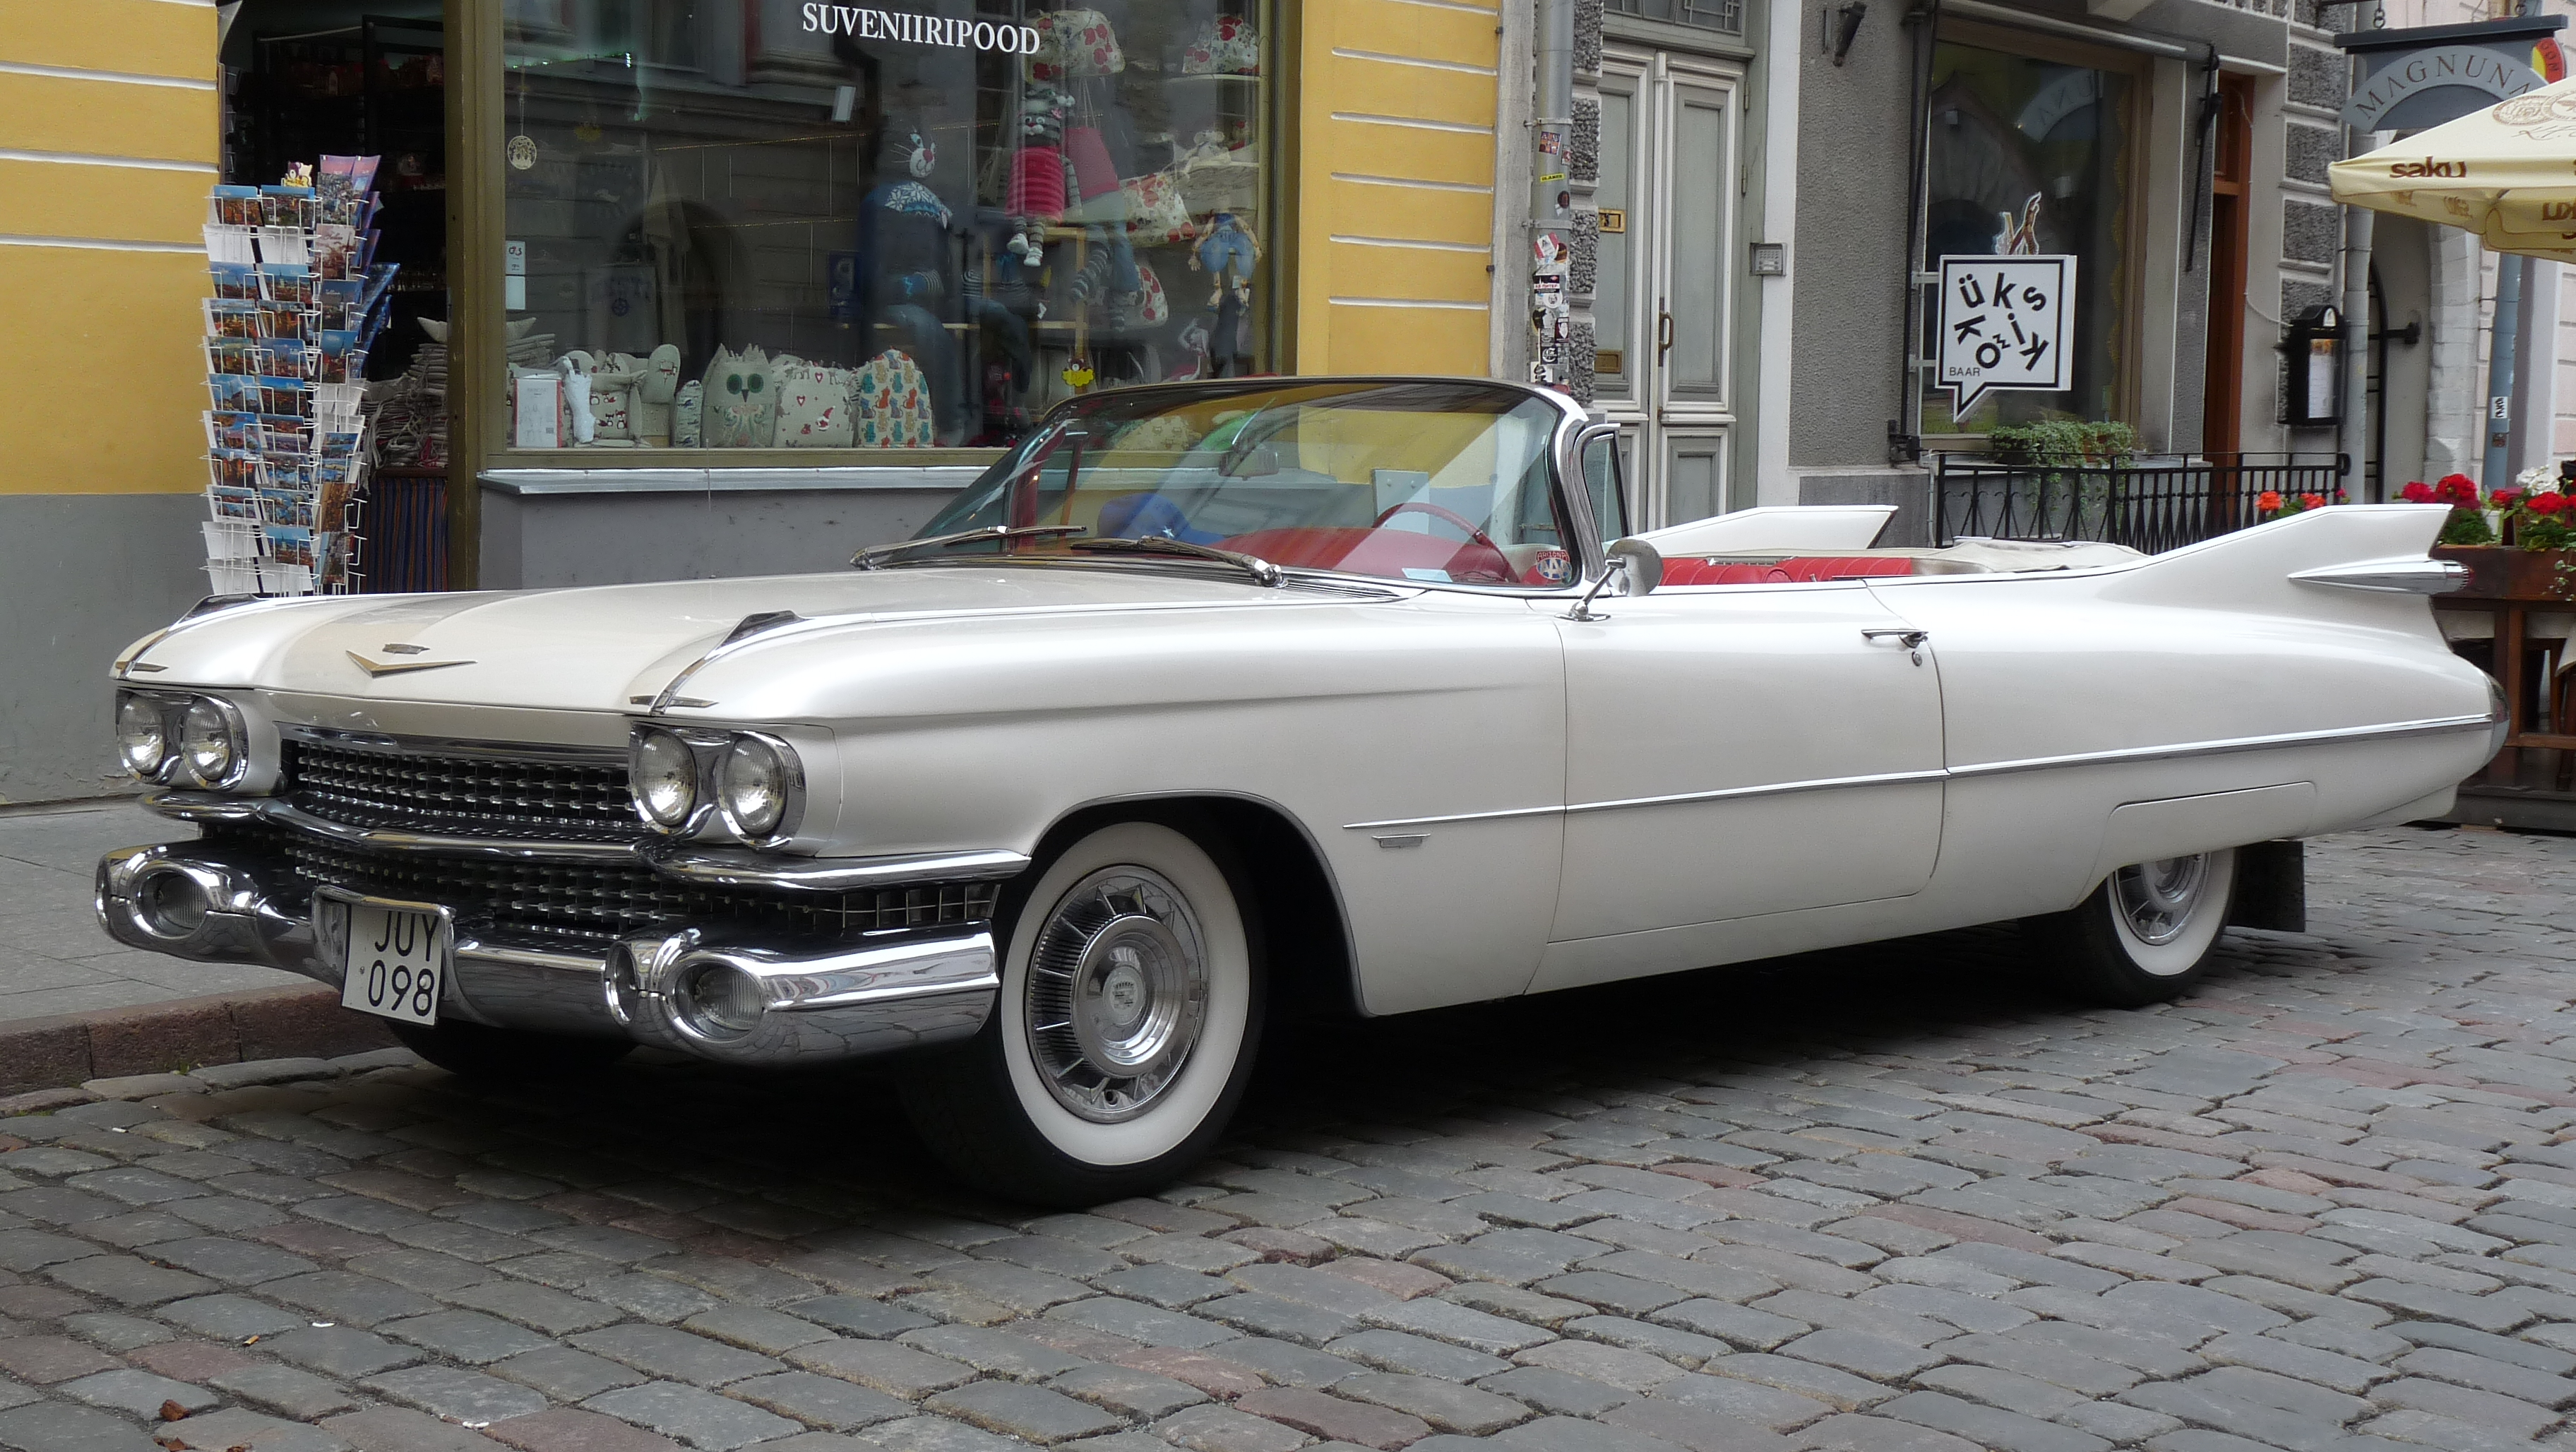 2016 Cadillac Convertible >> File 1959 Cadillac Sixty Two Convertible In Pikk Street Jpg